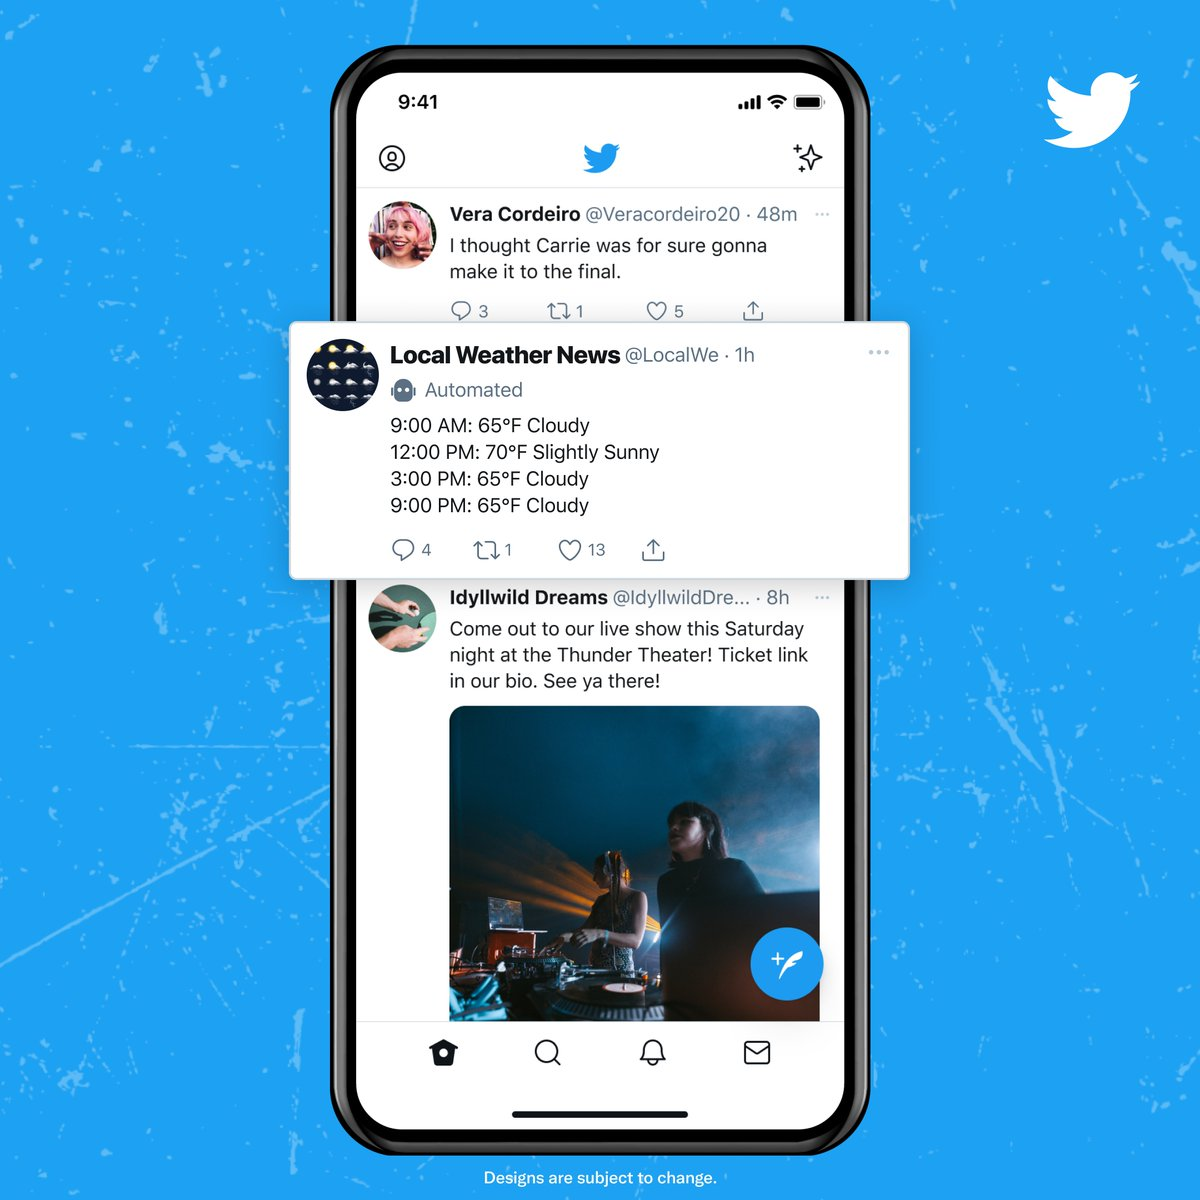 What's a bot and what's not? We're making it easier to identify #GoodBots and their automated Tweets with new labels. Starting today, we're testing these labels to give you more context about who you're interacting with on Twitter.